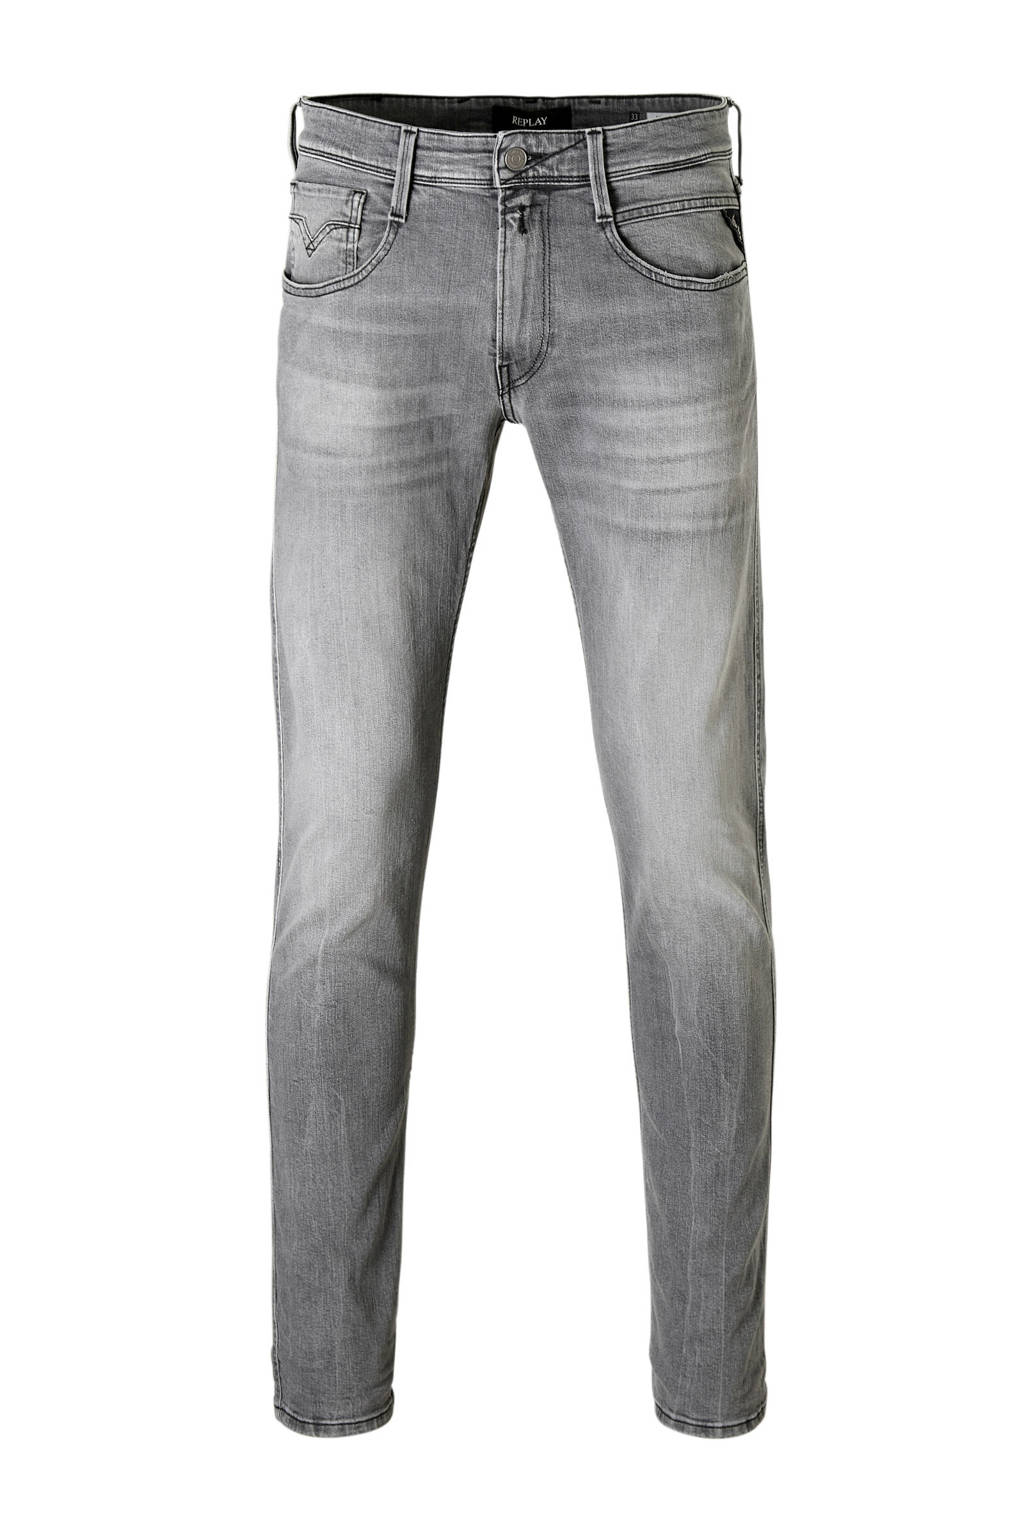 REPLAY slim fit jeans Anbass, Grijs